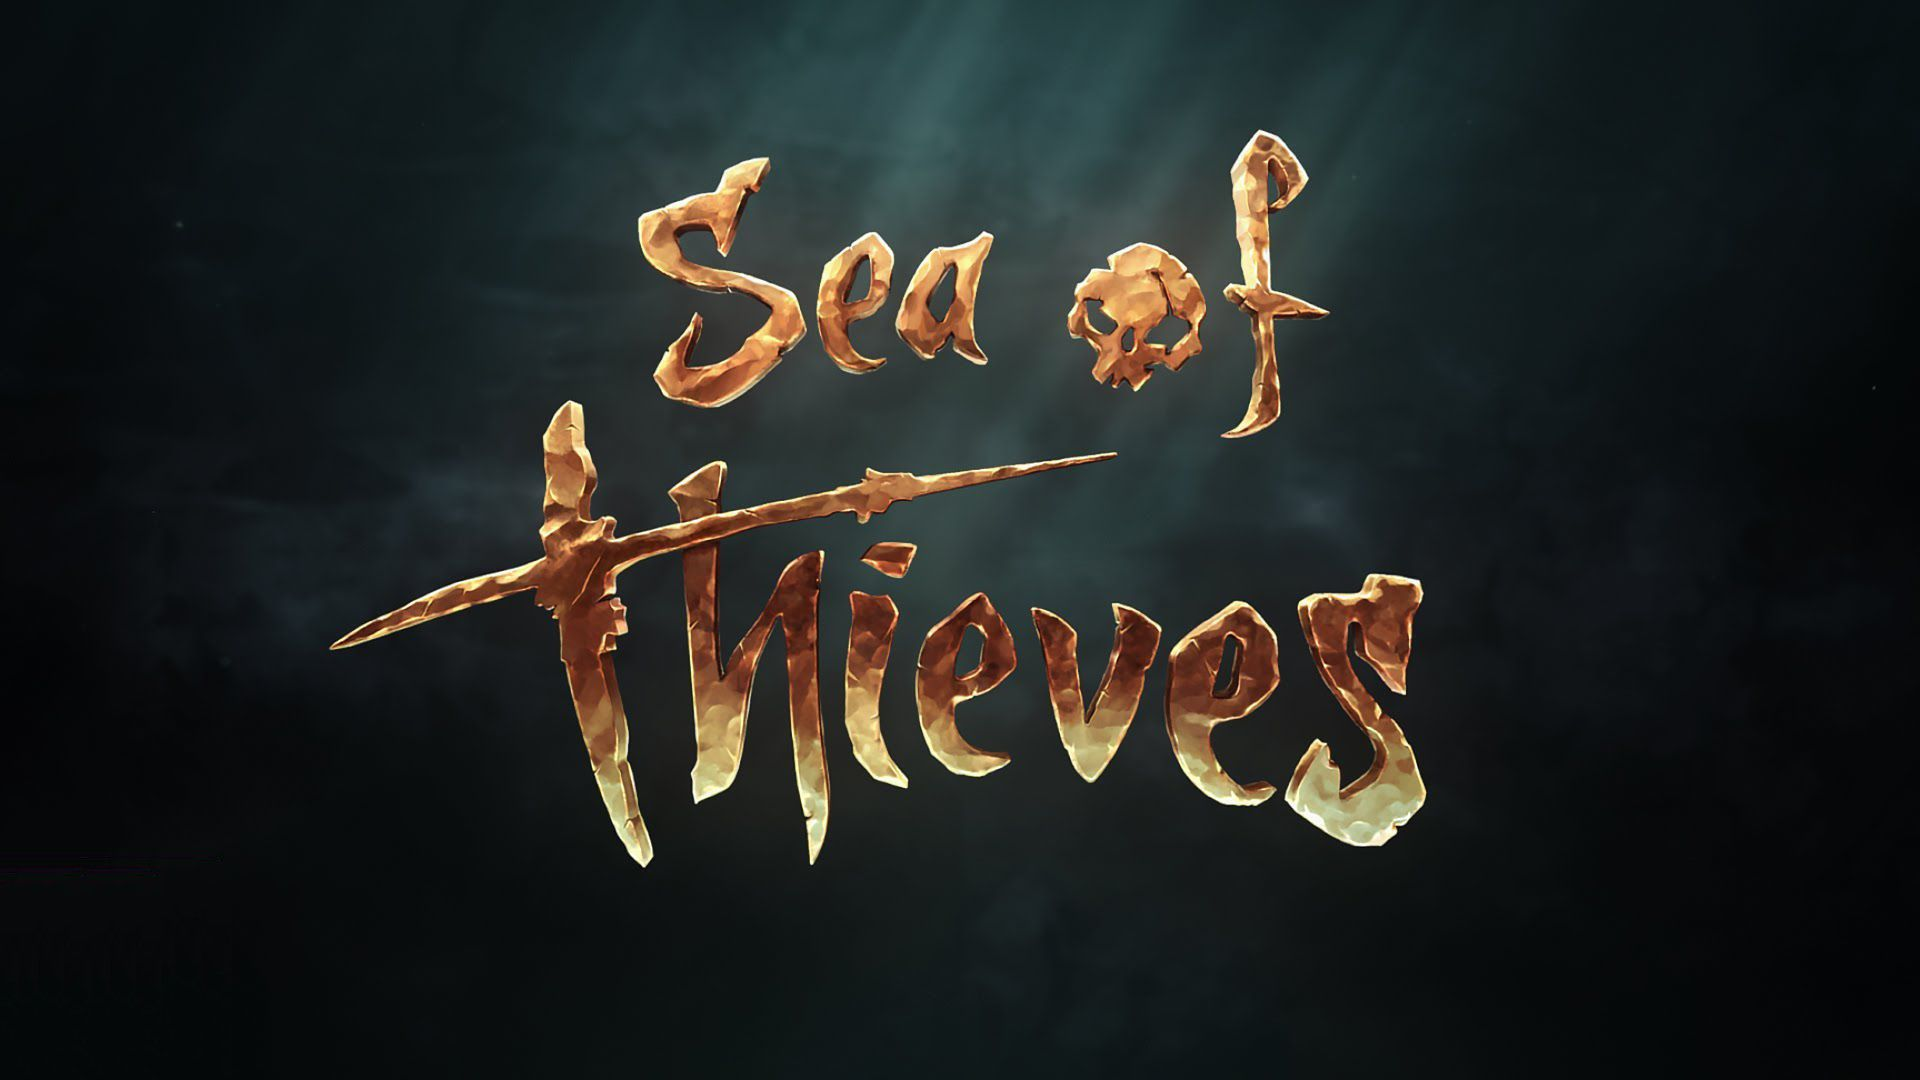 Sea Of Thieves Tumblr